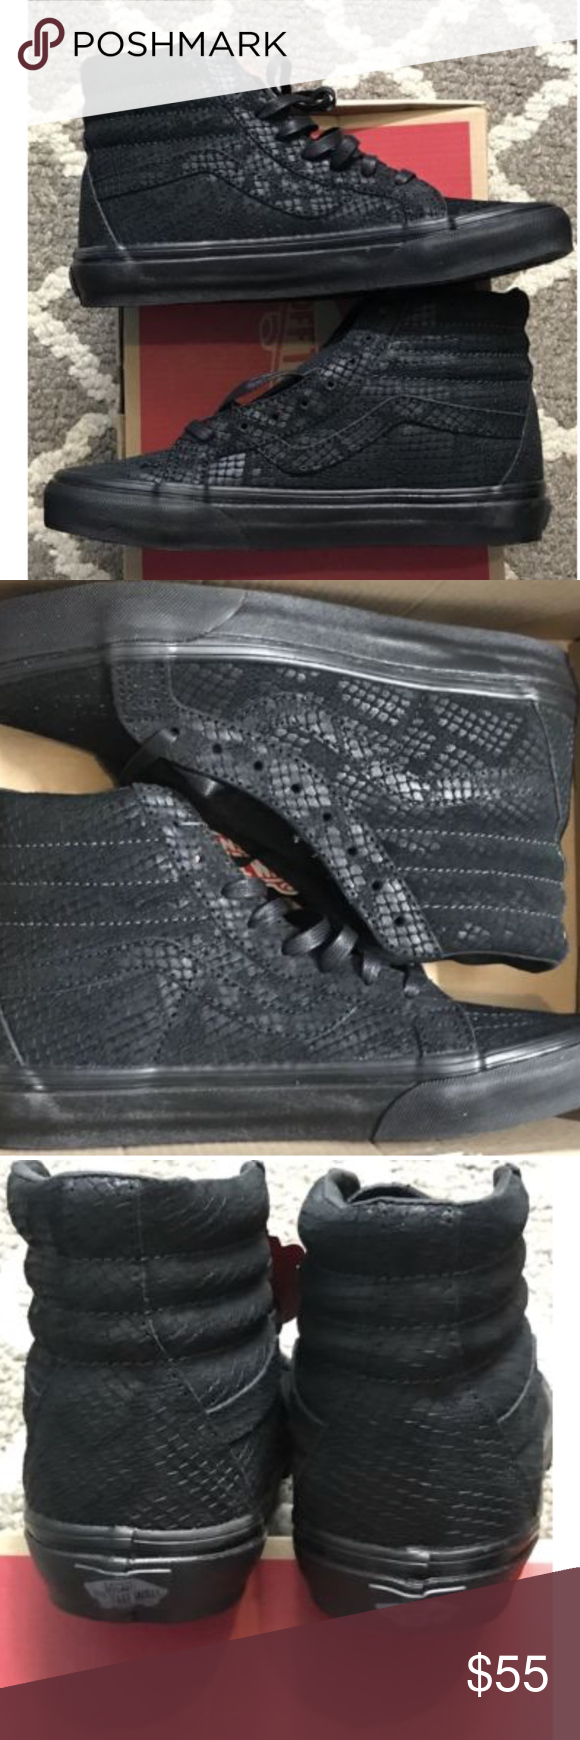 42fdf7b294 Vans Sk8 Hi Reissue DX Reptile Black Skate Shoes Vans Sk8 Hi Reissue DX  Reptile Black Skate Shoes Size Men 5.5 Women 7 Brand new in box Vans Shoes  Athletic ...